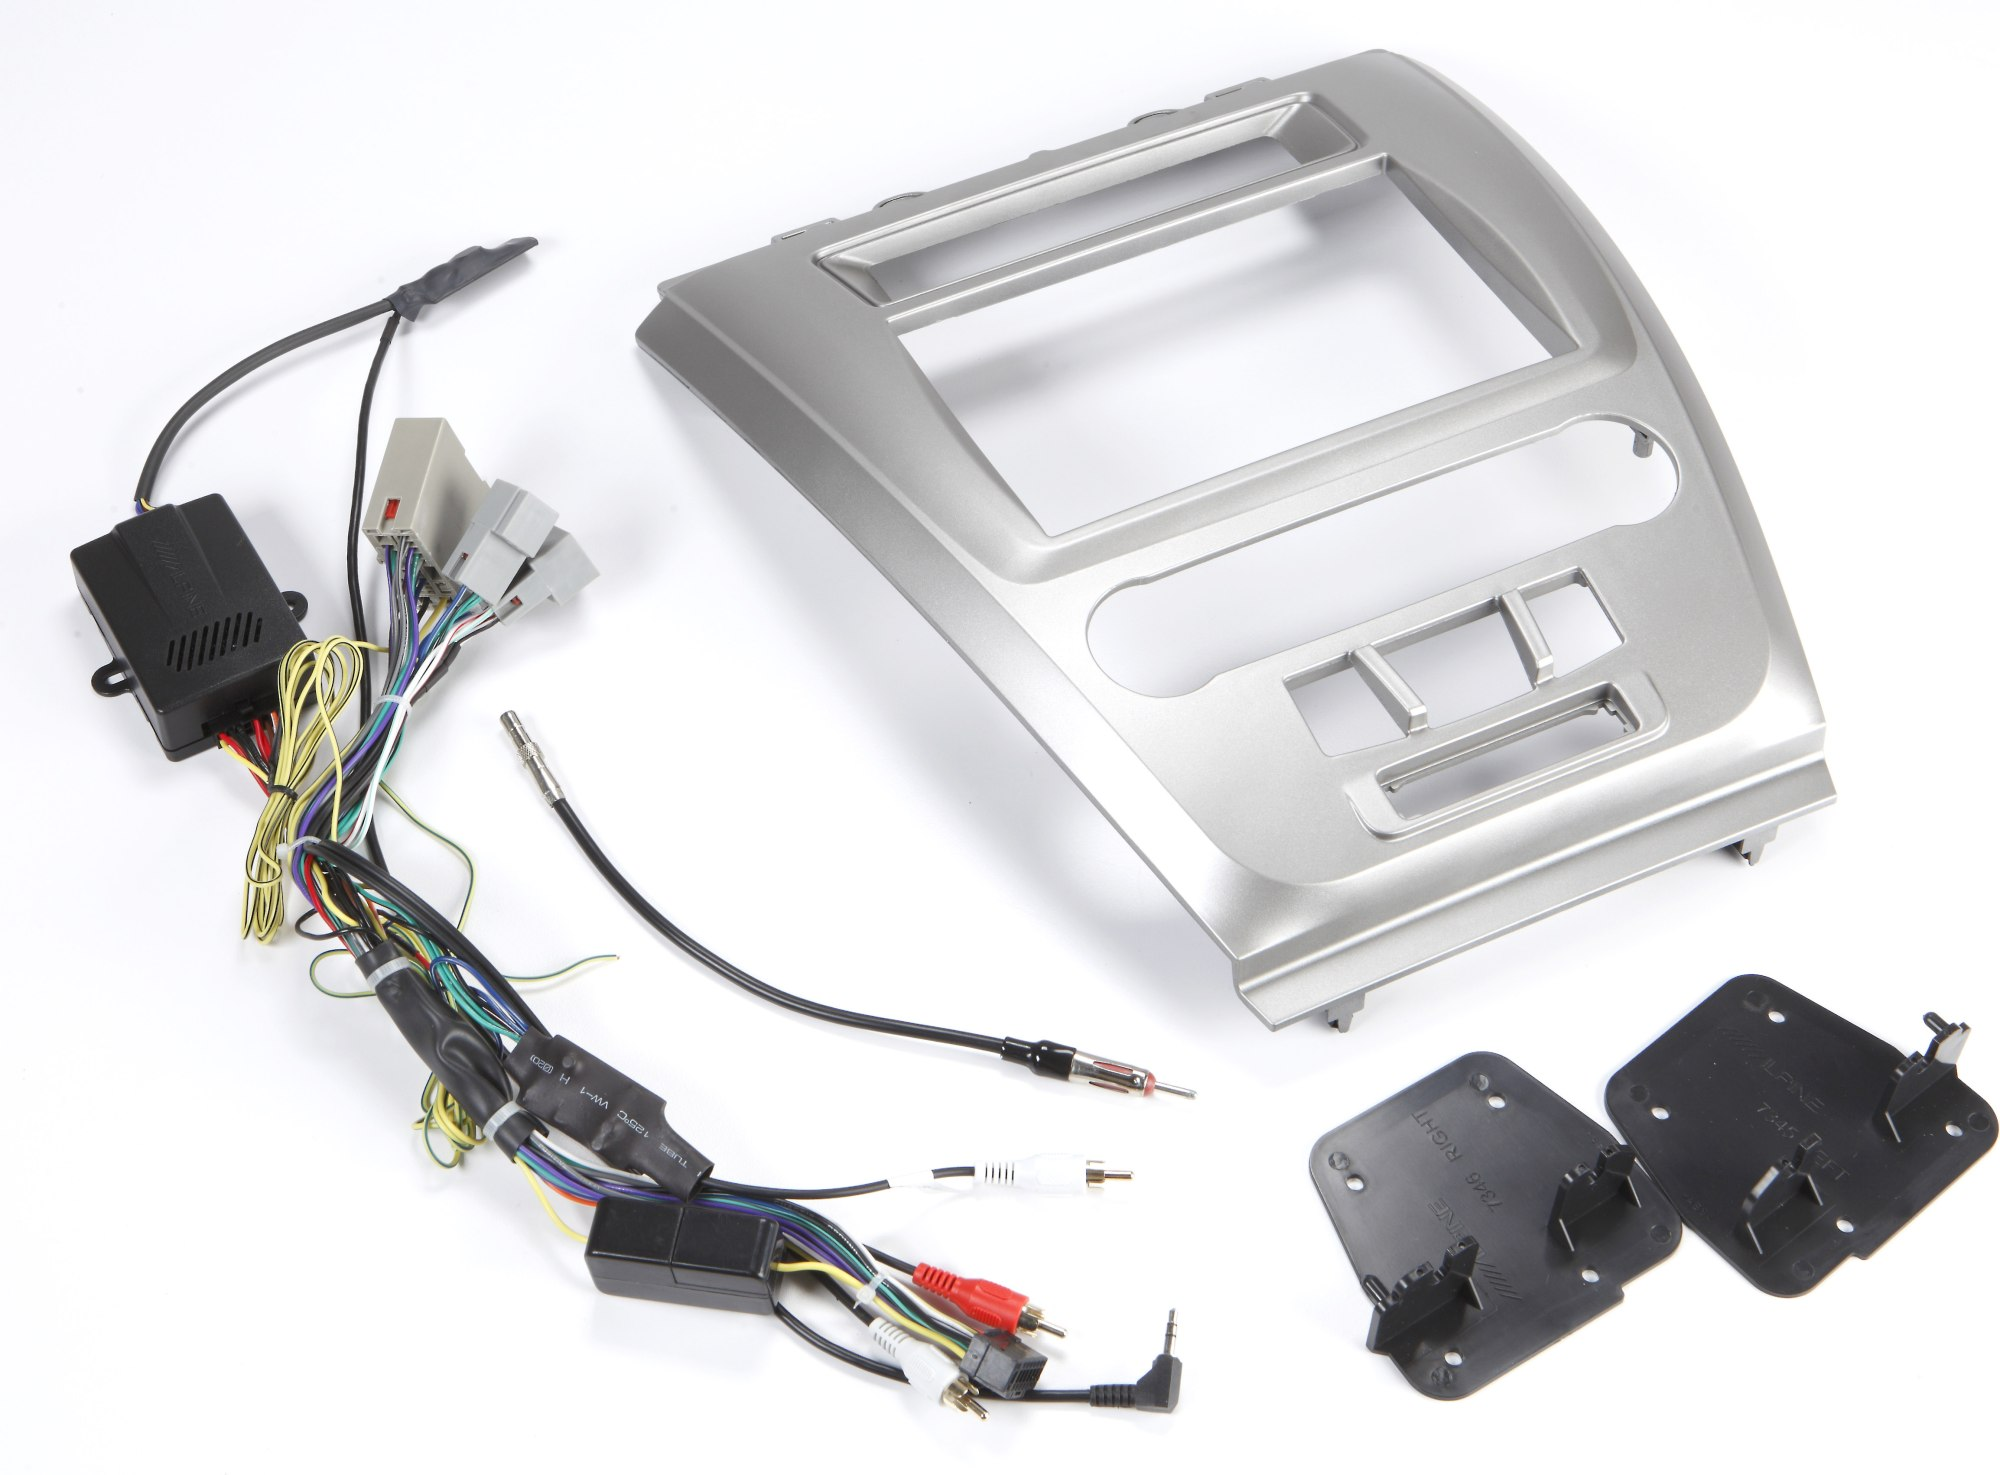 hight resolution of alpine ktx fus8 restyle dash and wiring kit install and connect a alpine navigation system in select ford fusion and mercury milan models at crutchfield com